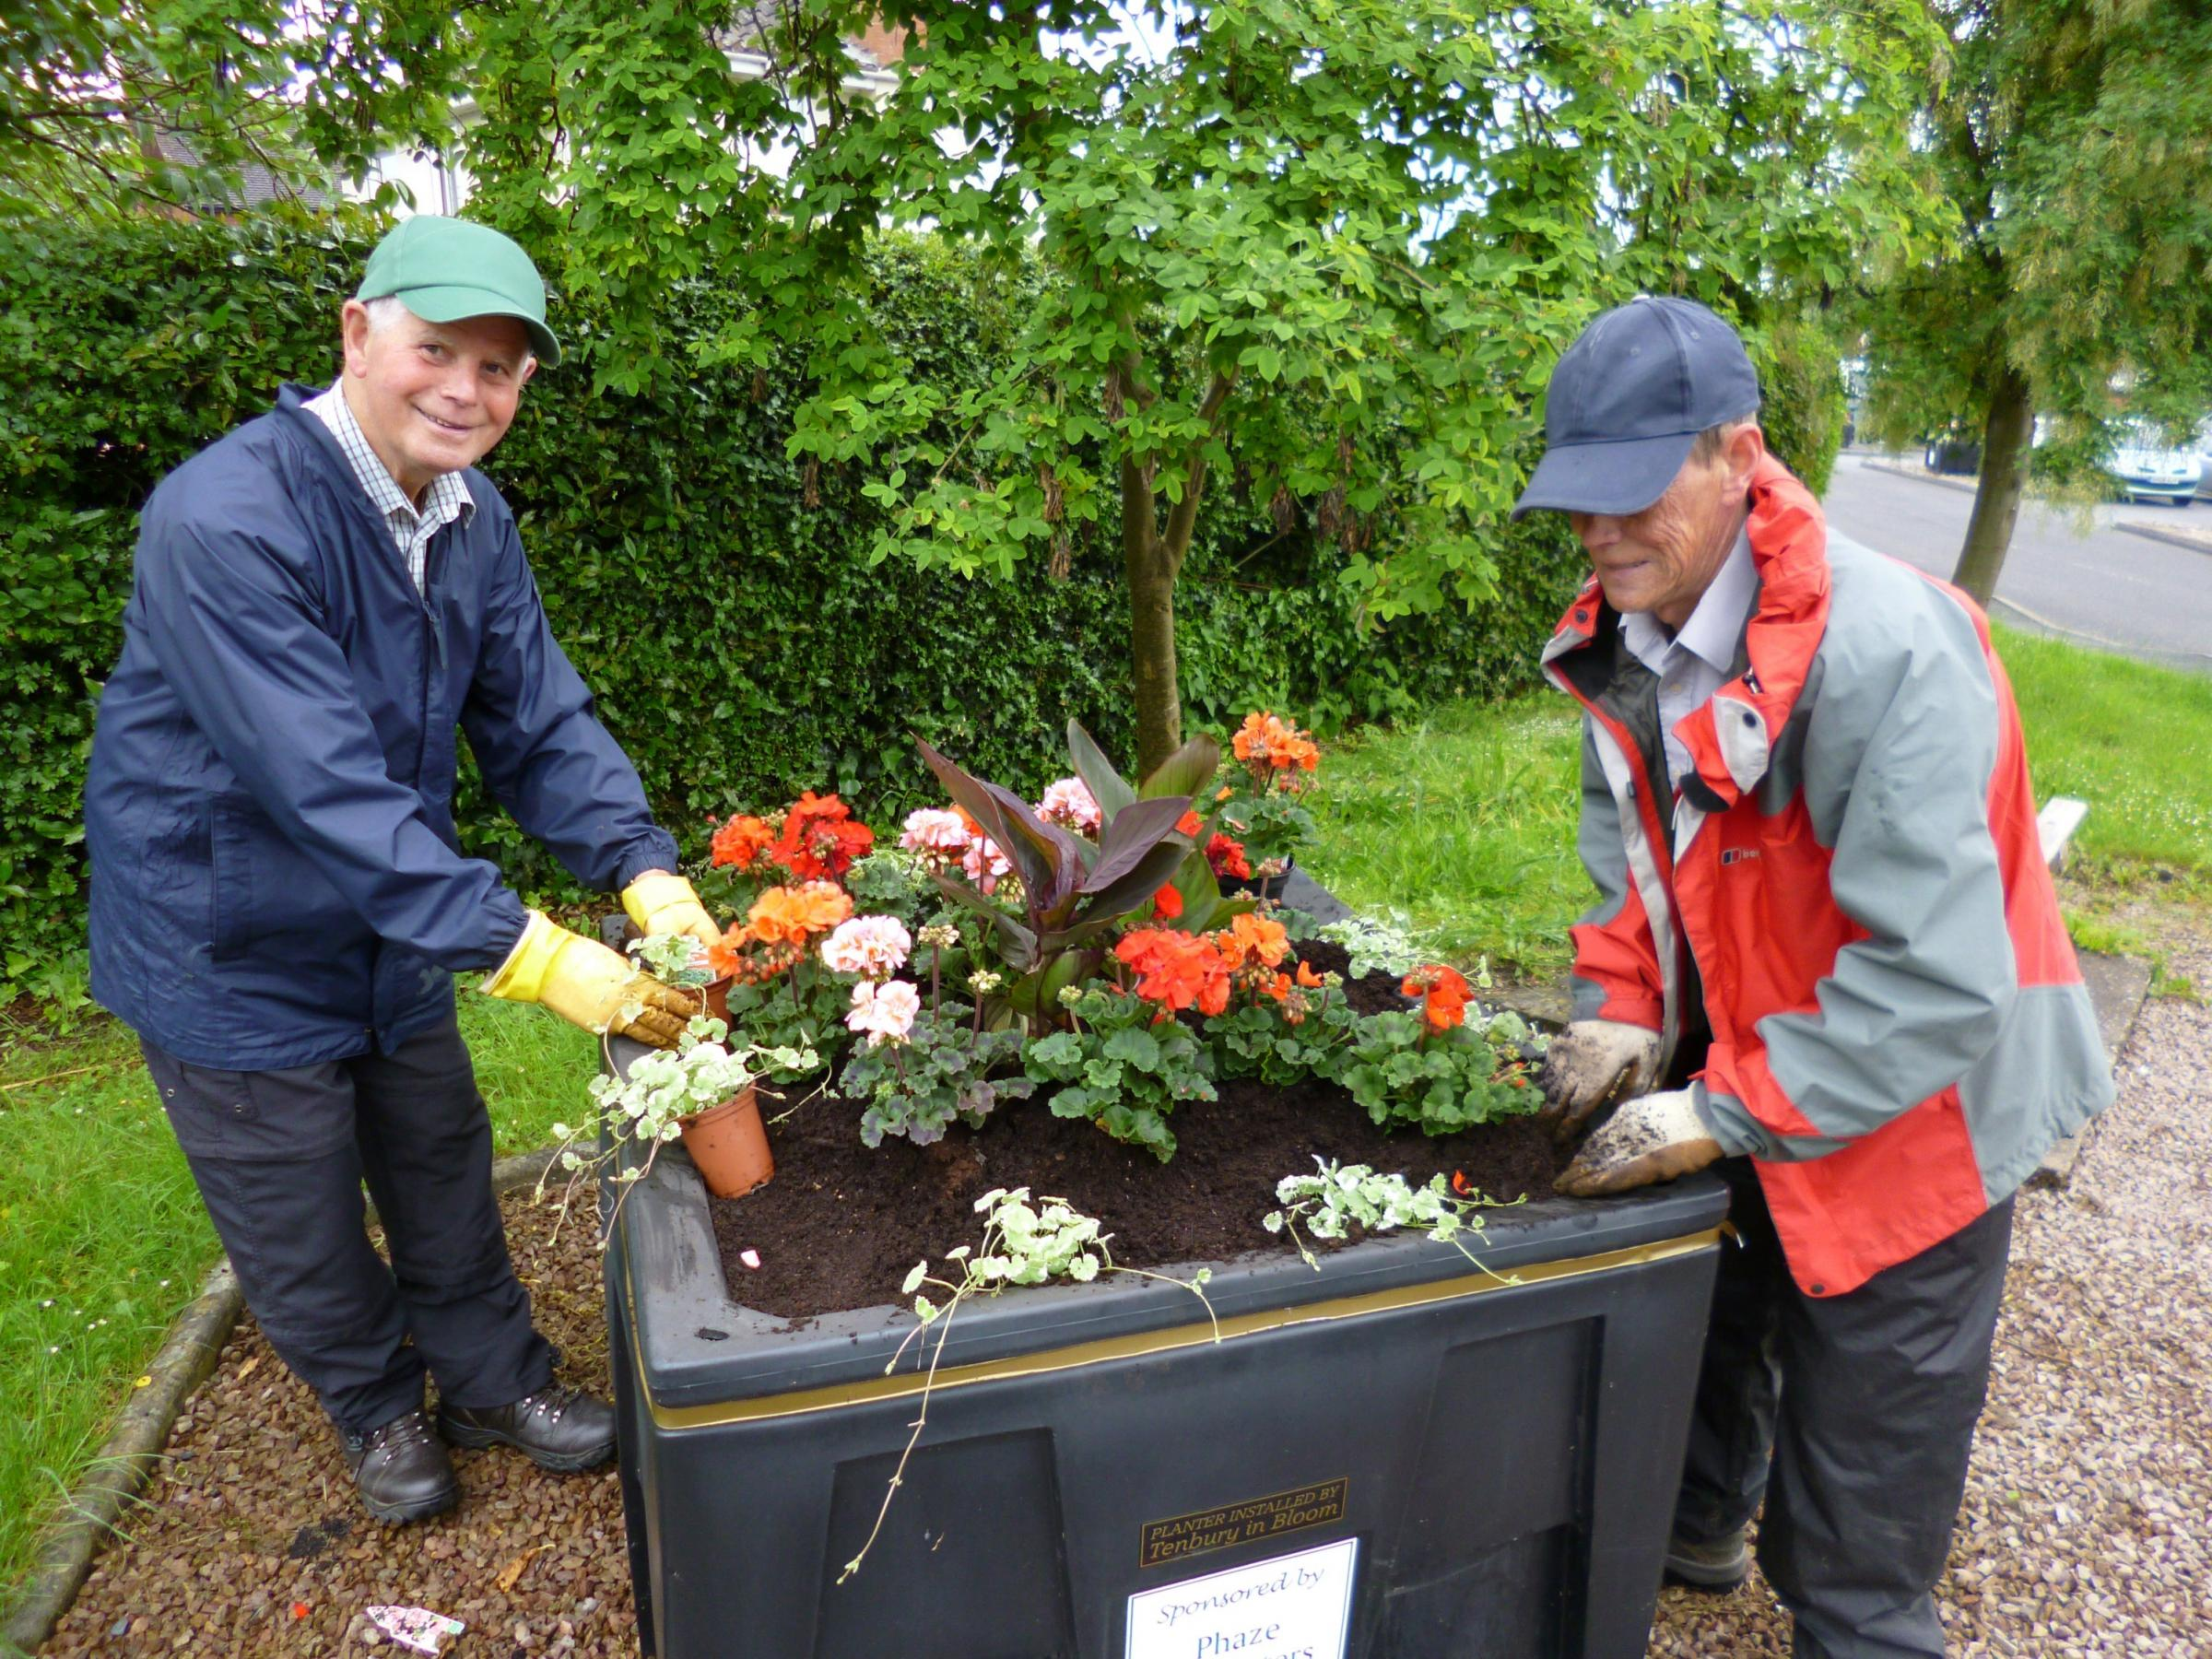 Planting takes place for Tenbury In Bloom